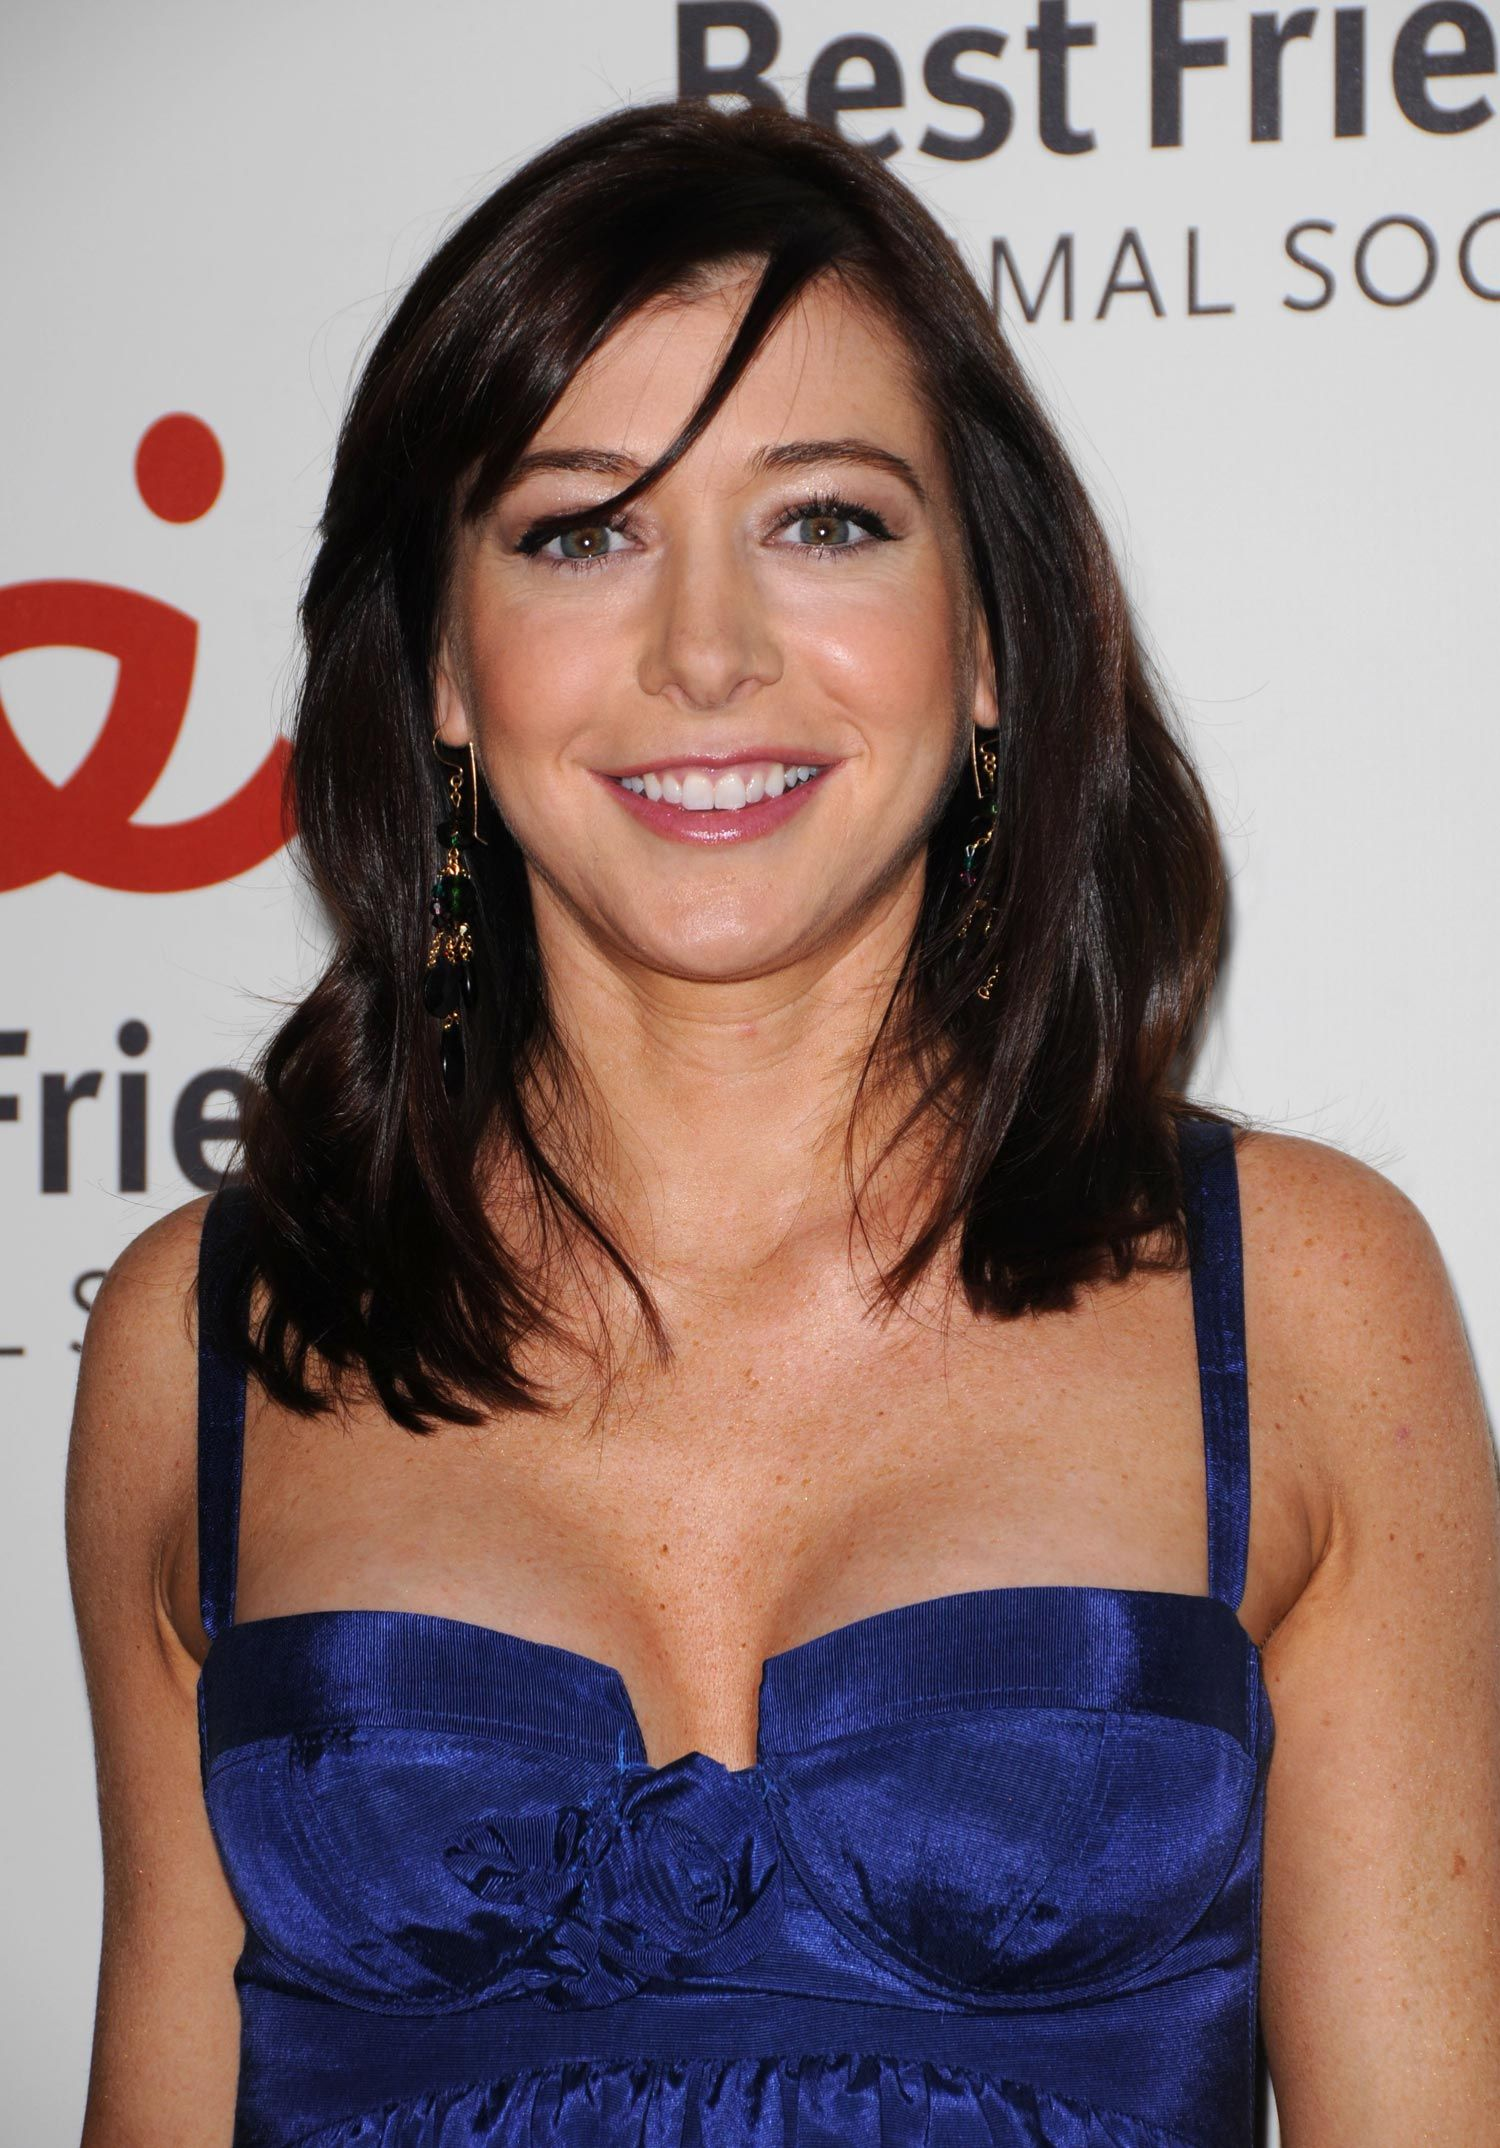 Fappening Hacked Alyson Hannigan naked photo 2017